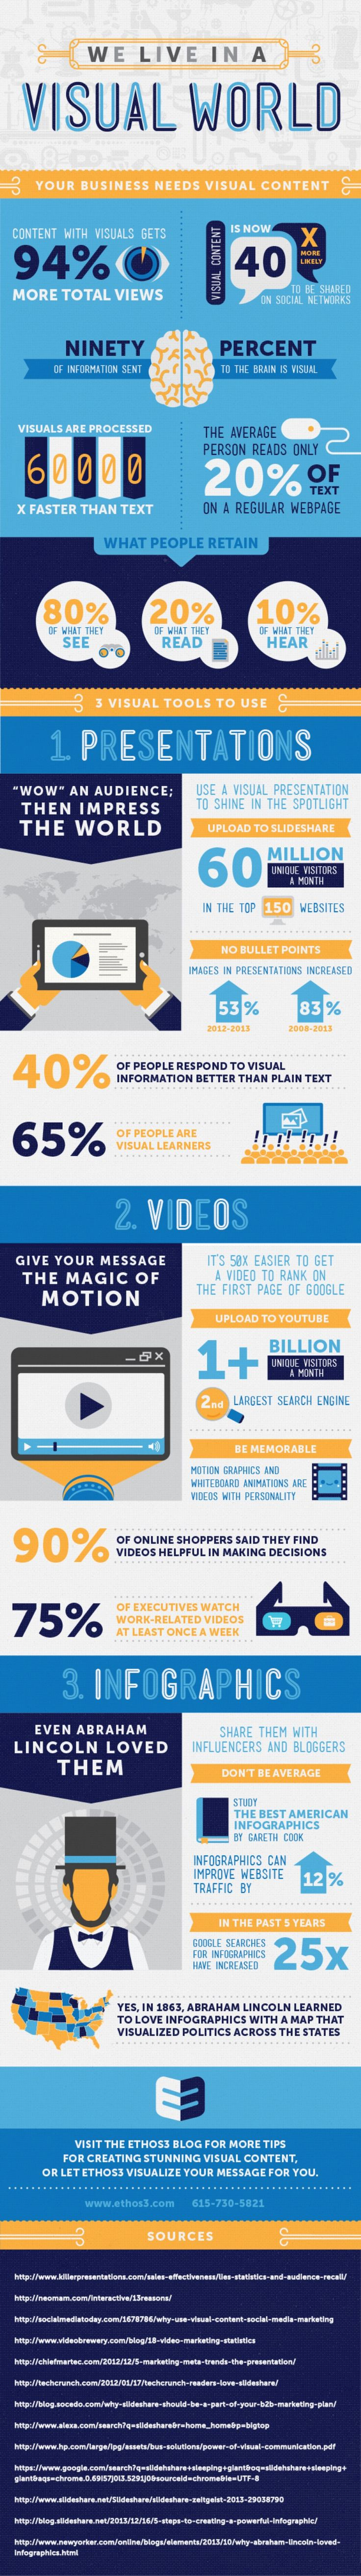 Your Business Needs Visual Content (Infographic) by Ethos3 | Presentation Design...